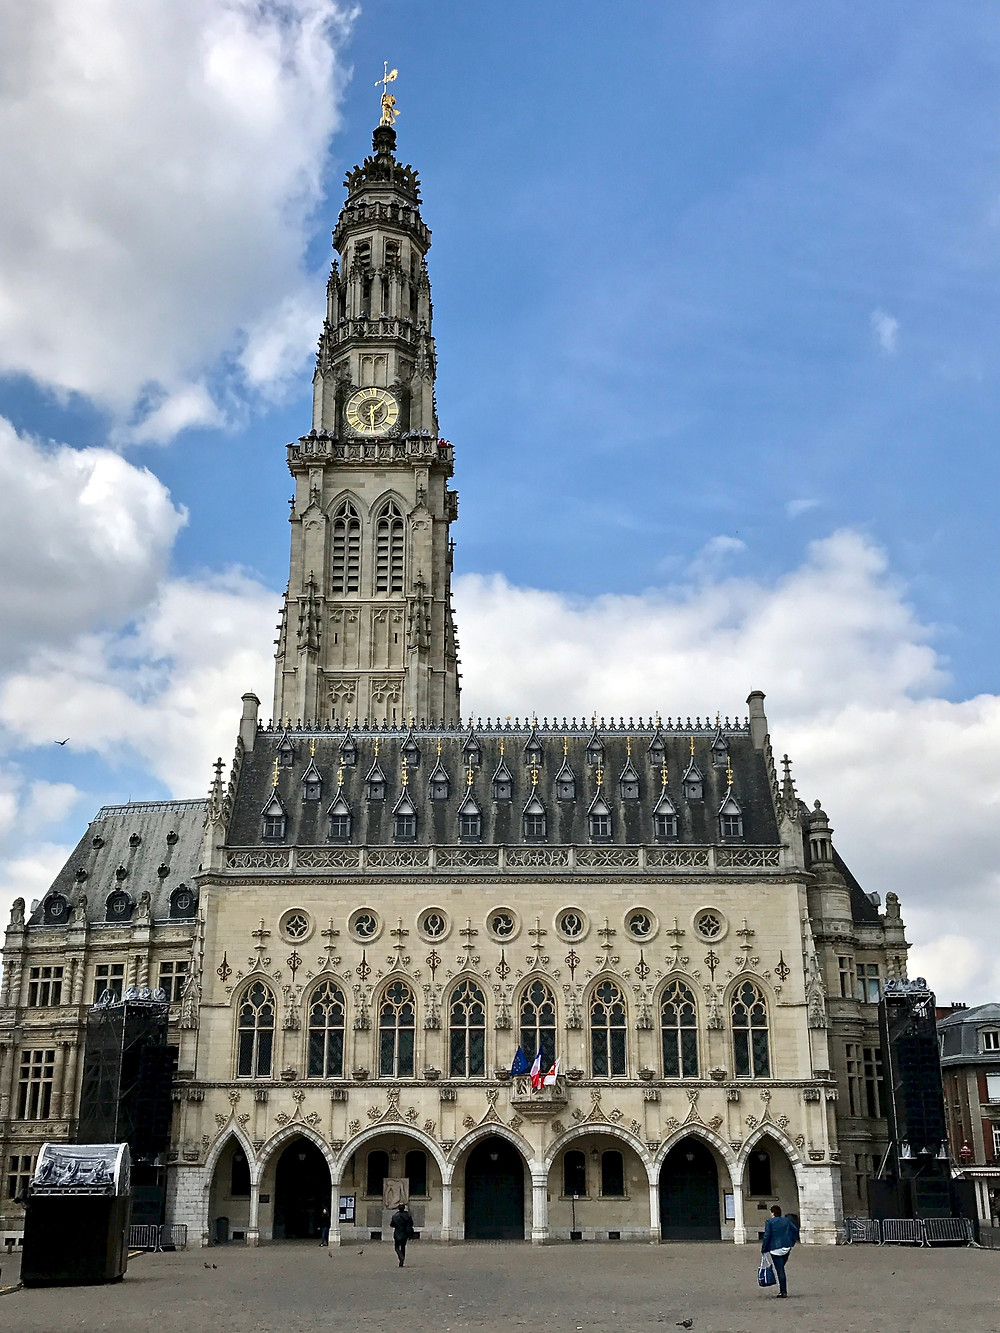 the UNESCO-listed belfry of Arras